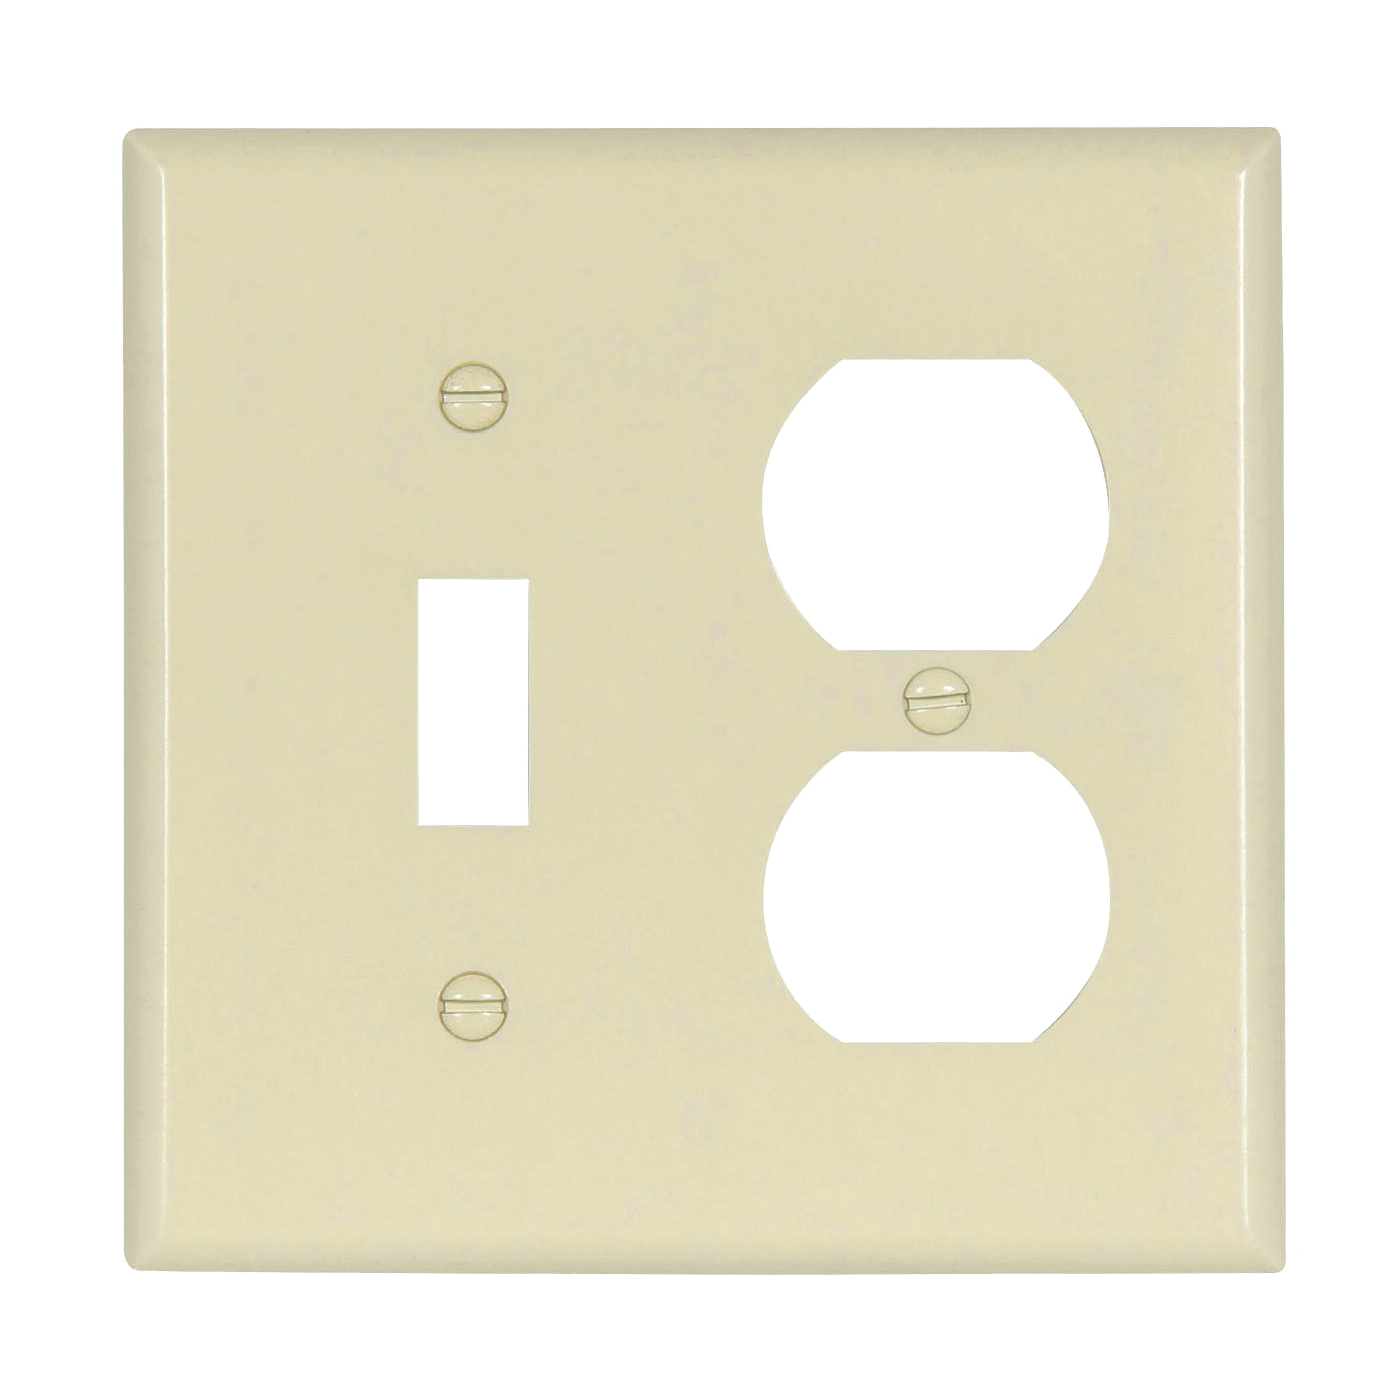 Picture of Eaton Wiring Devices 2138LA-BOX Wallplate, 4-1/2 in L, 4-9/16 in W, 2-Gang, Thermoset, Light Almond, High-Gloss